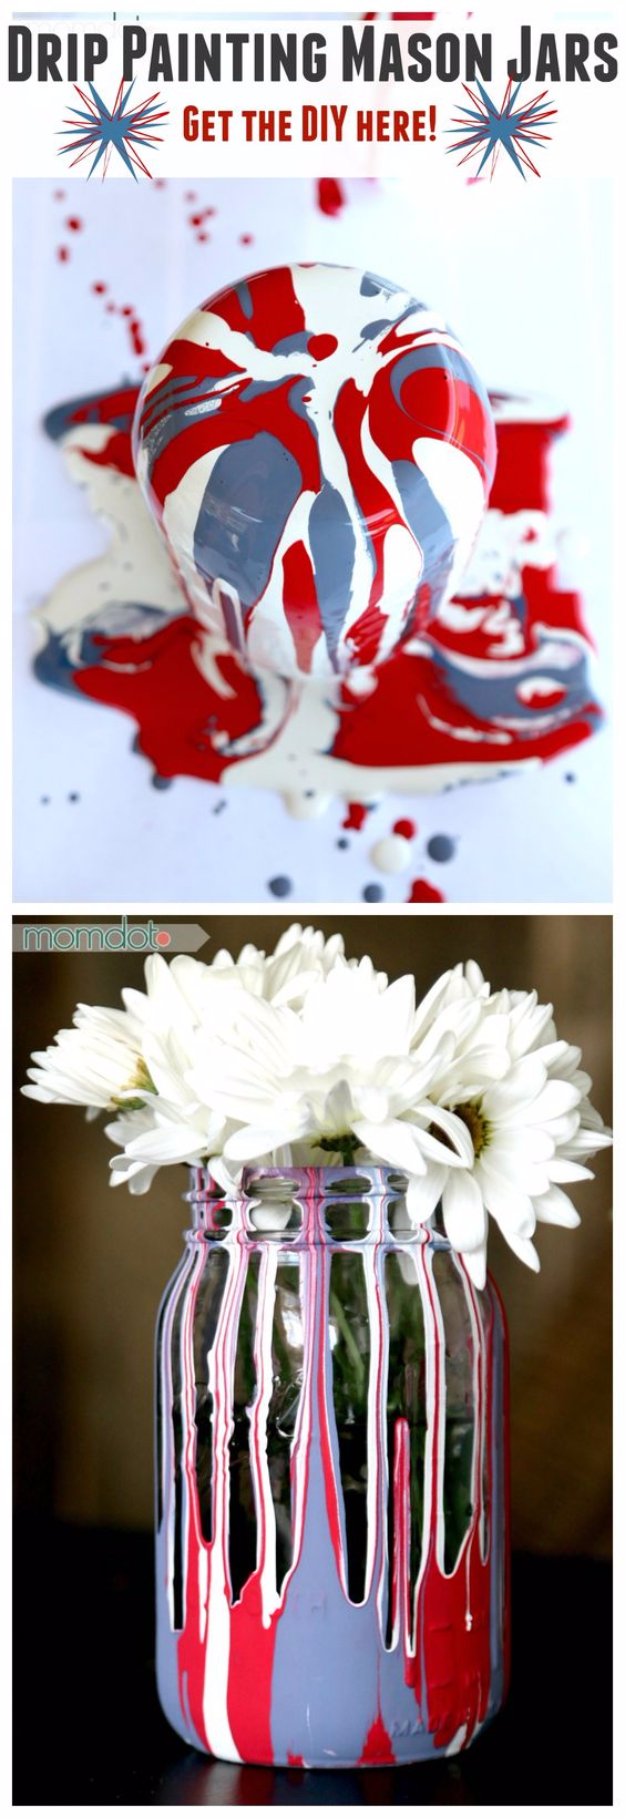 Mason Jar Crafts You Can Make In Under an Hour - Drip Painting Mason Jars DIY -Quick Mason Jar DIY Projects that Make Cool Home Decor and Awesome DIY Gifts - Best Creative Ideas for Mason Jars with Step By Step Tutorials and Instructions - For Teens, For Home, For Gifts, For Kids, For Summer, For Fall  #masonjarcrafts #easycrafts